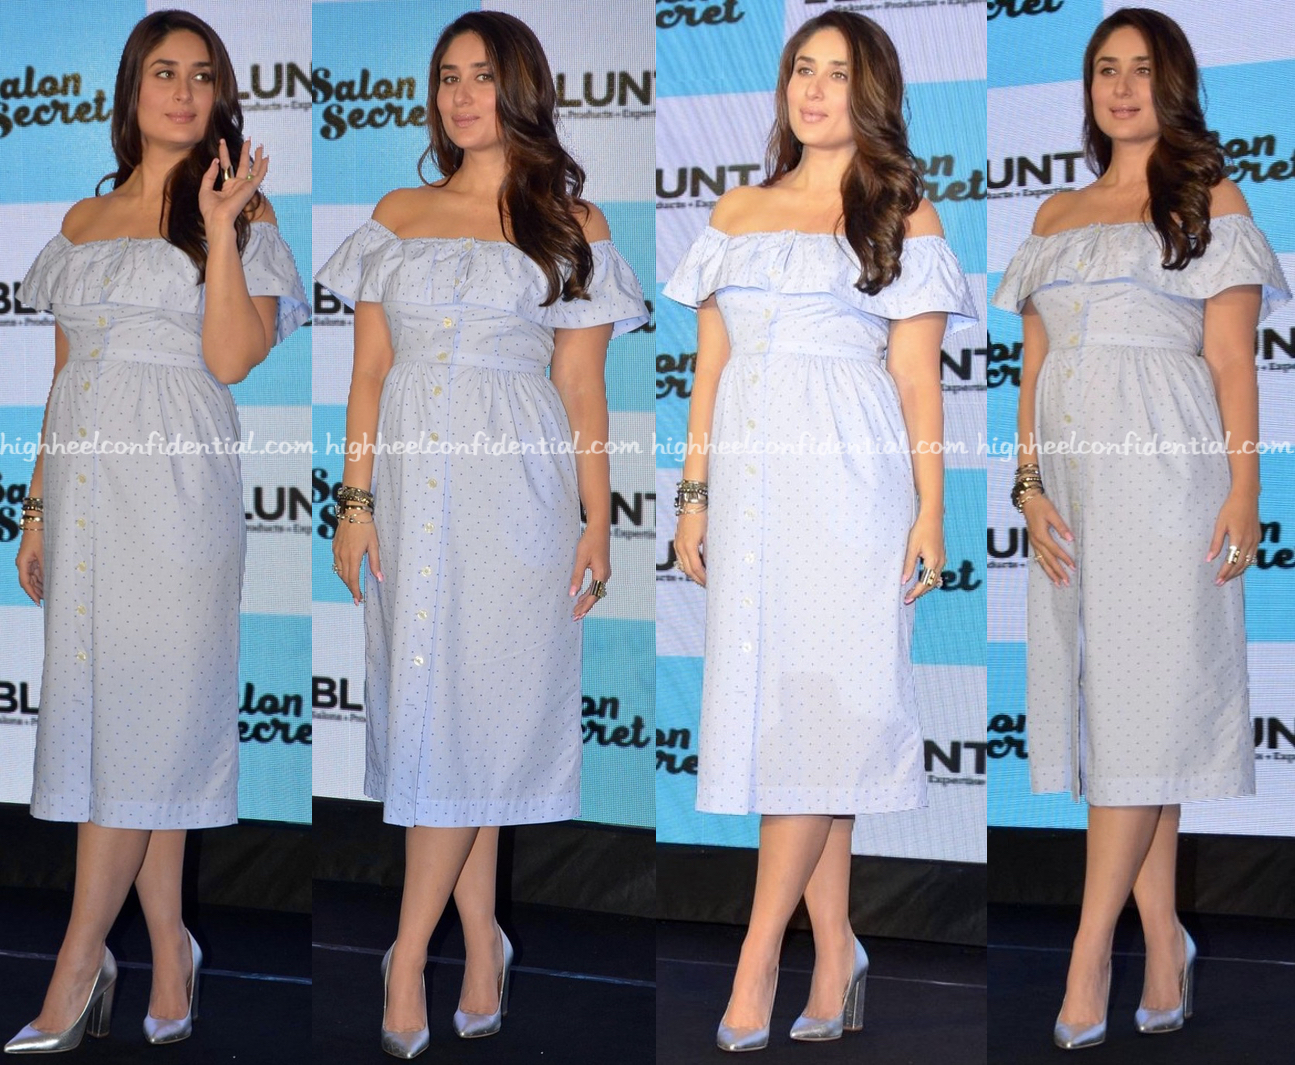 243938a622 Kareena Kapoor Archives - Page 33 of 118 - High Heel Confidential